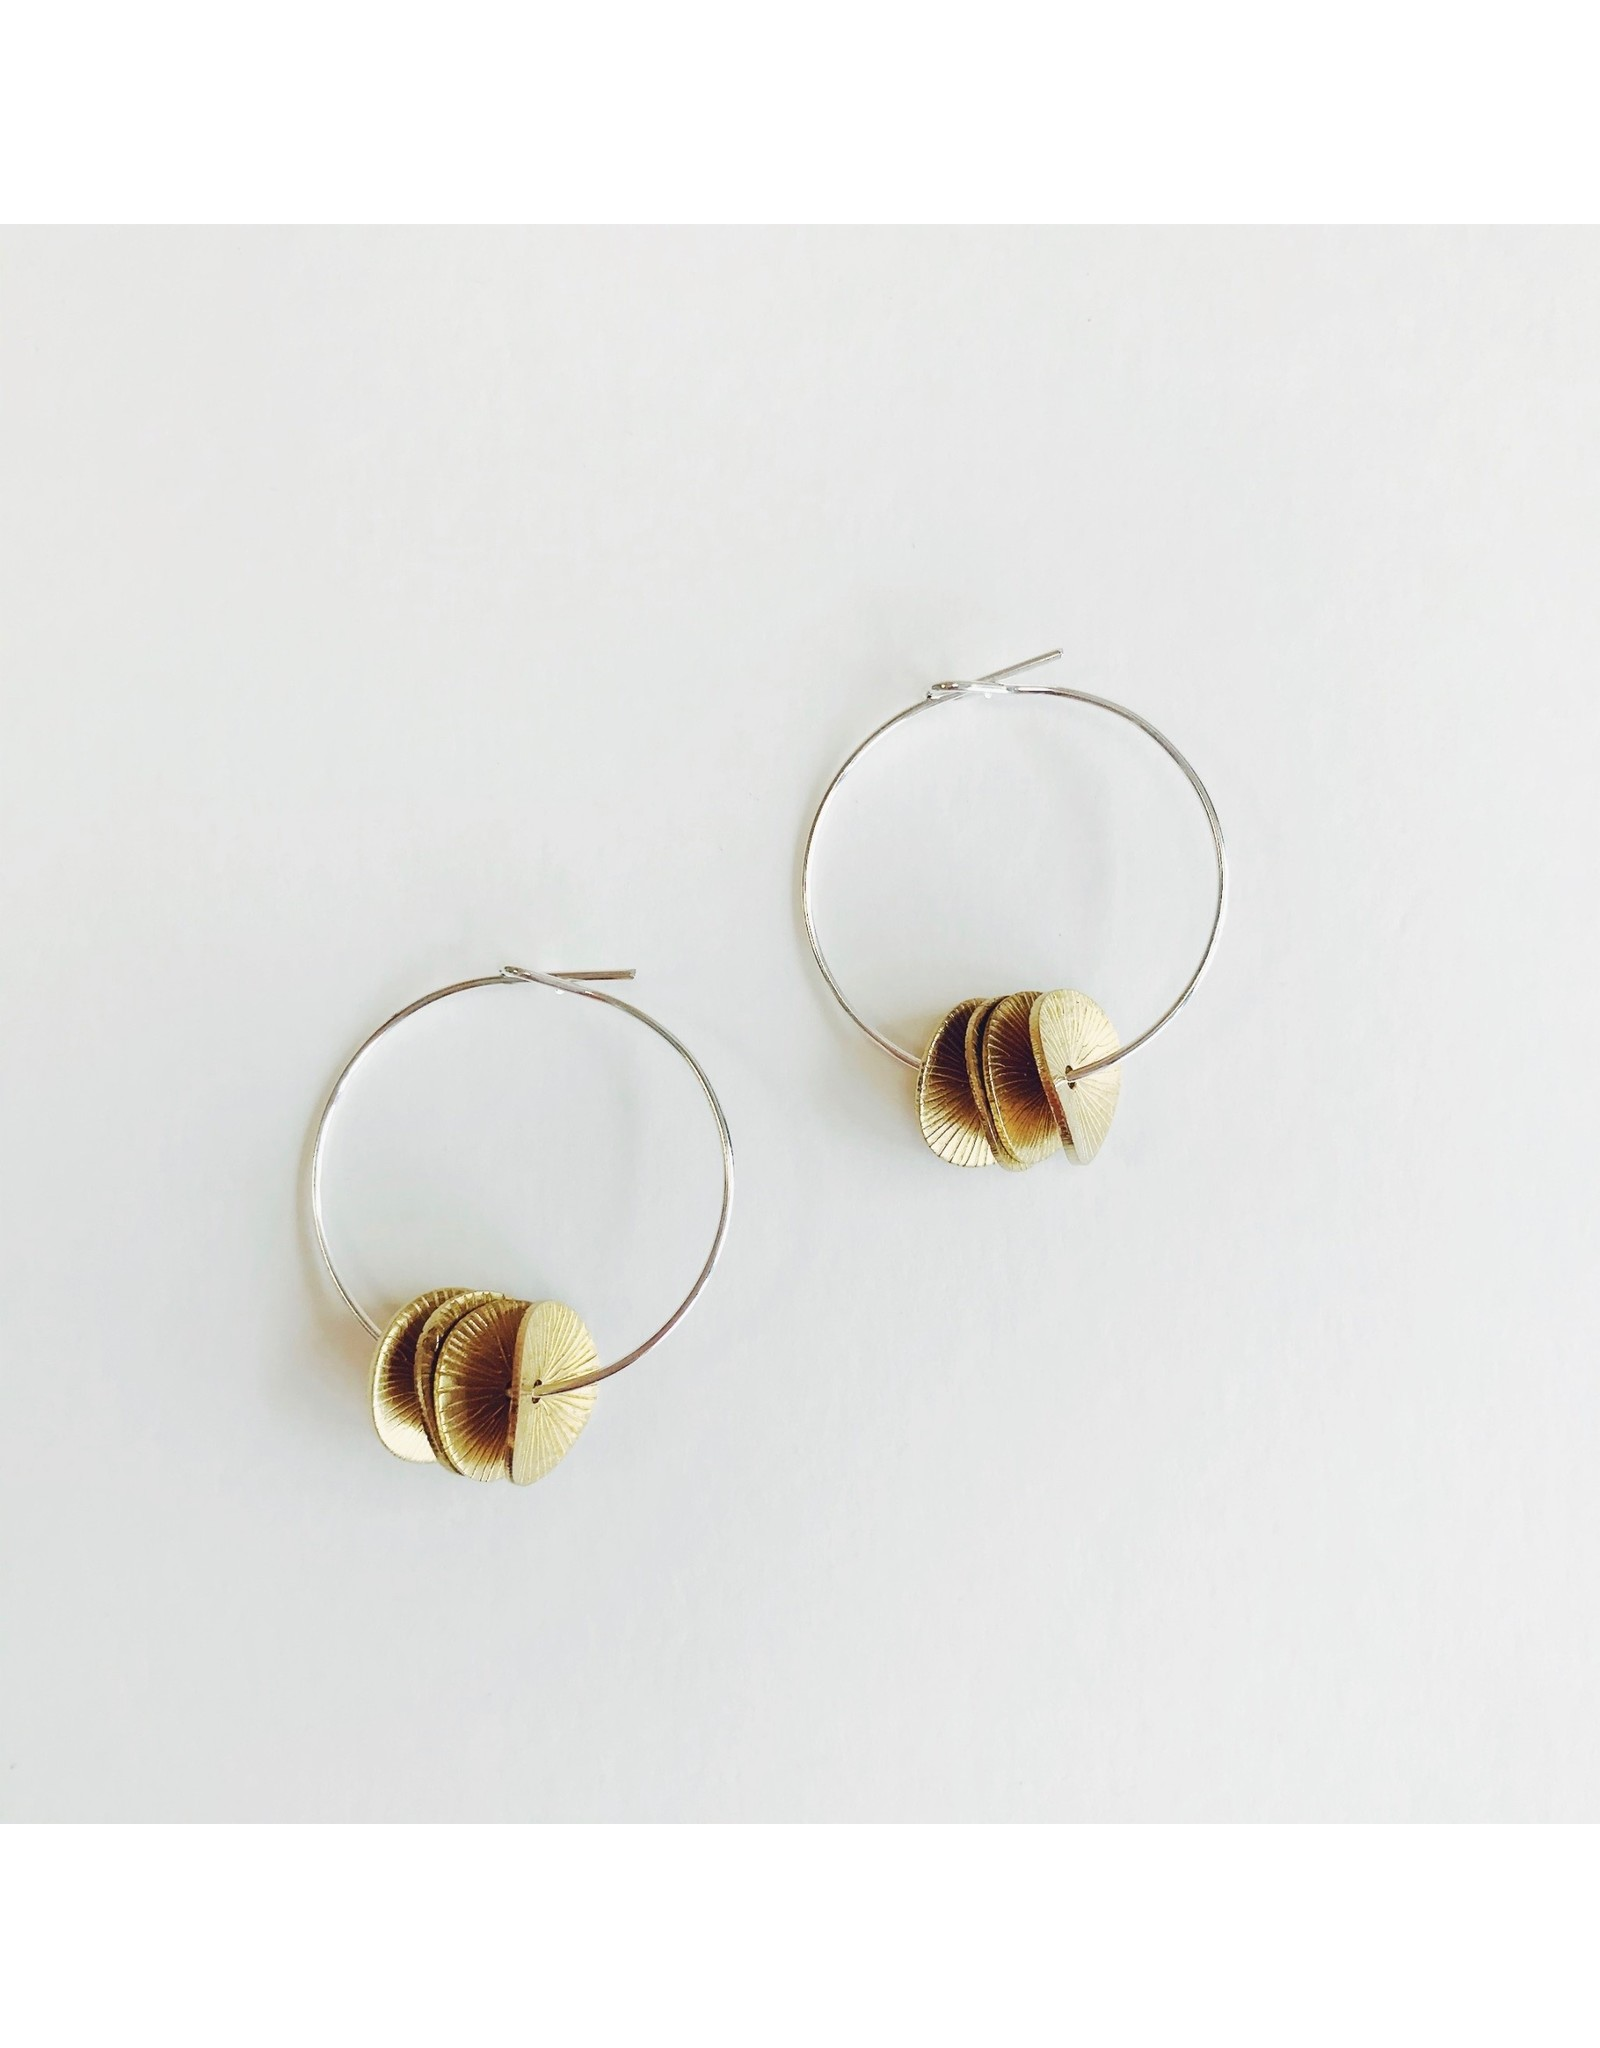 Silver Hoop Earrings with Brass Engraved Discs